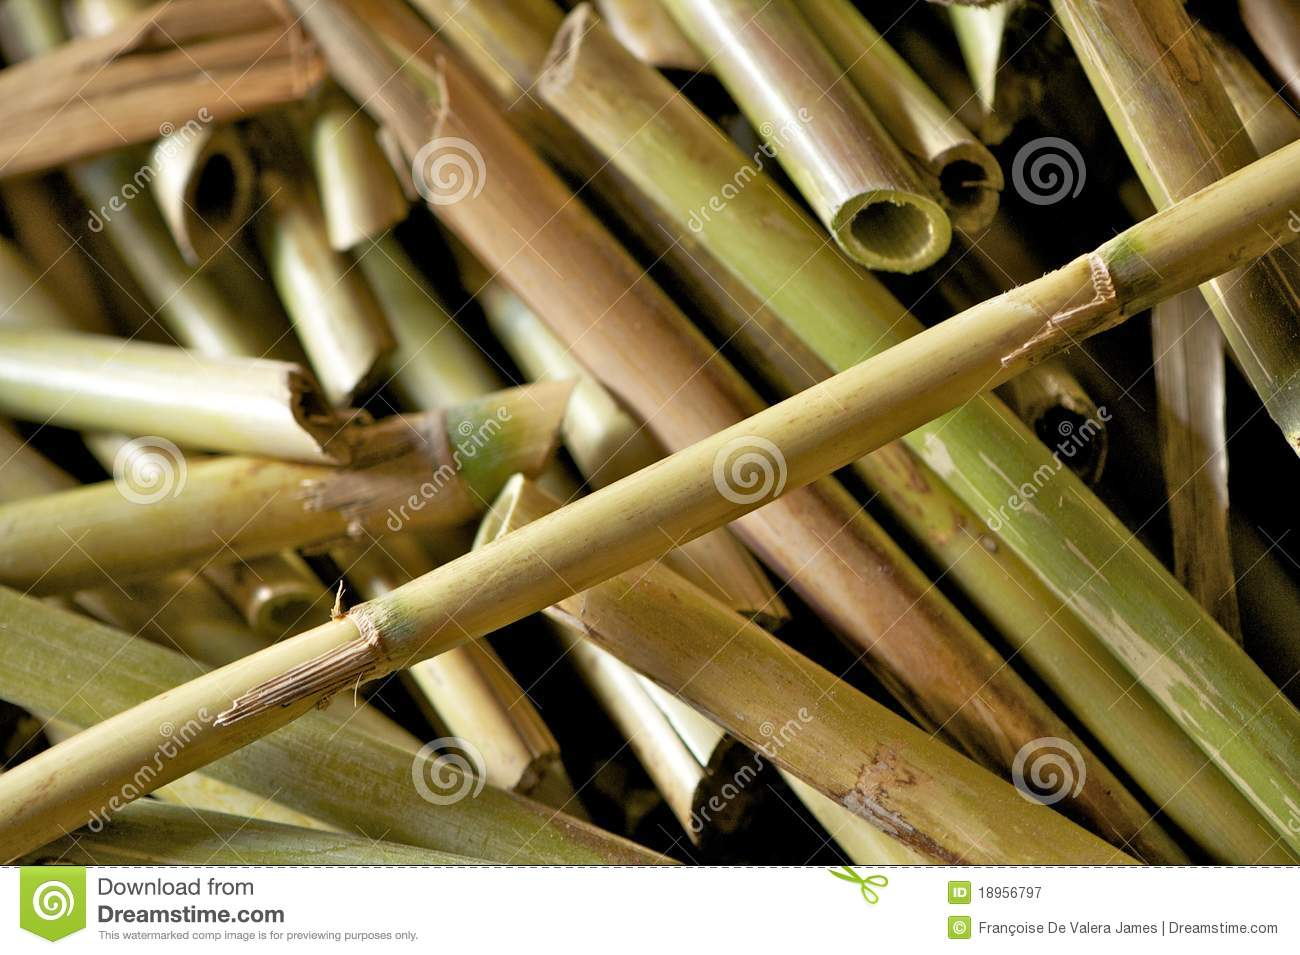 Cut river cane or bamboo stock image image of river for Uses for bamboo canes